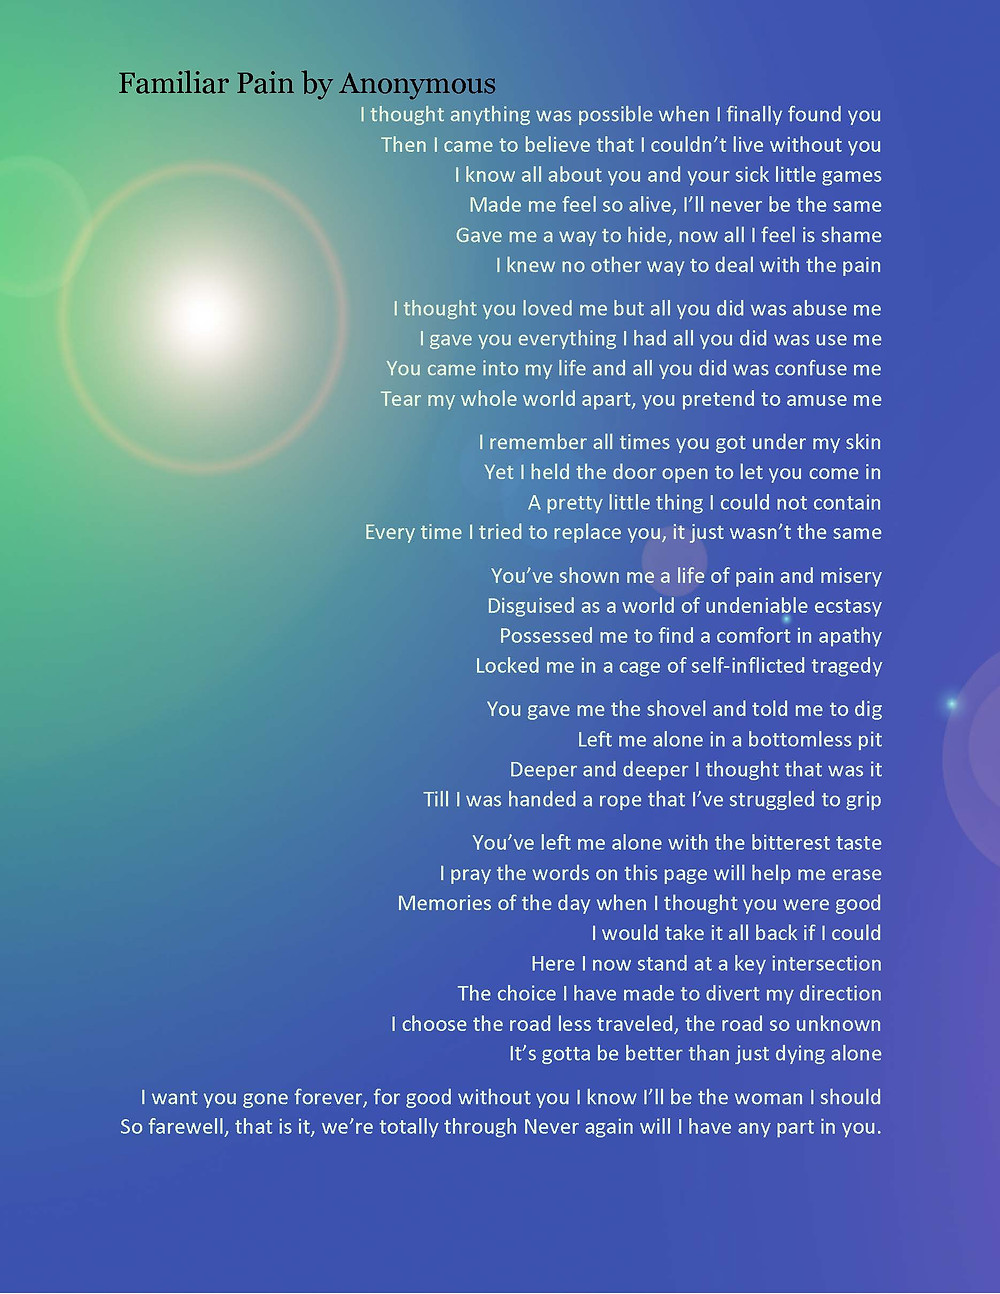 A poem written by a person in  recovery that was auctioned at our Holiday event.